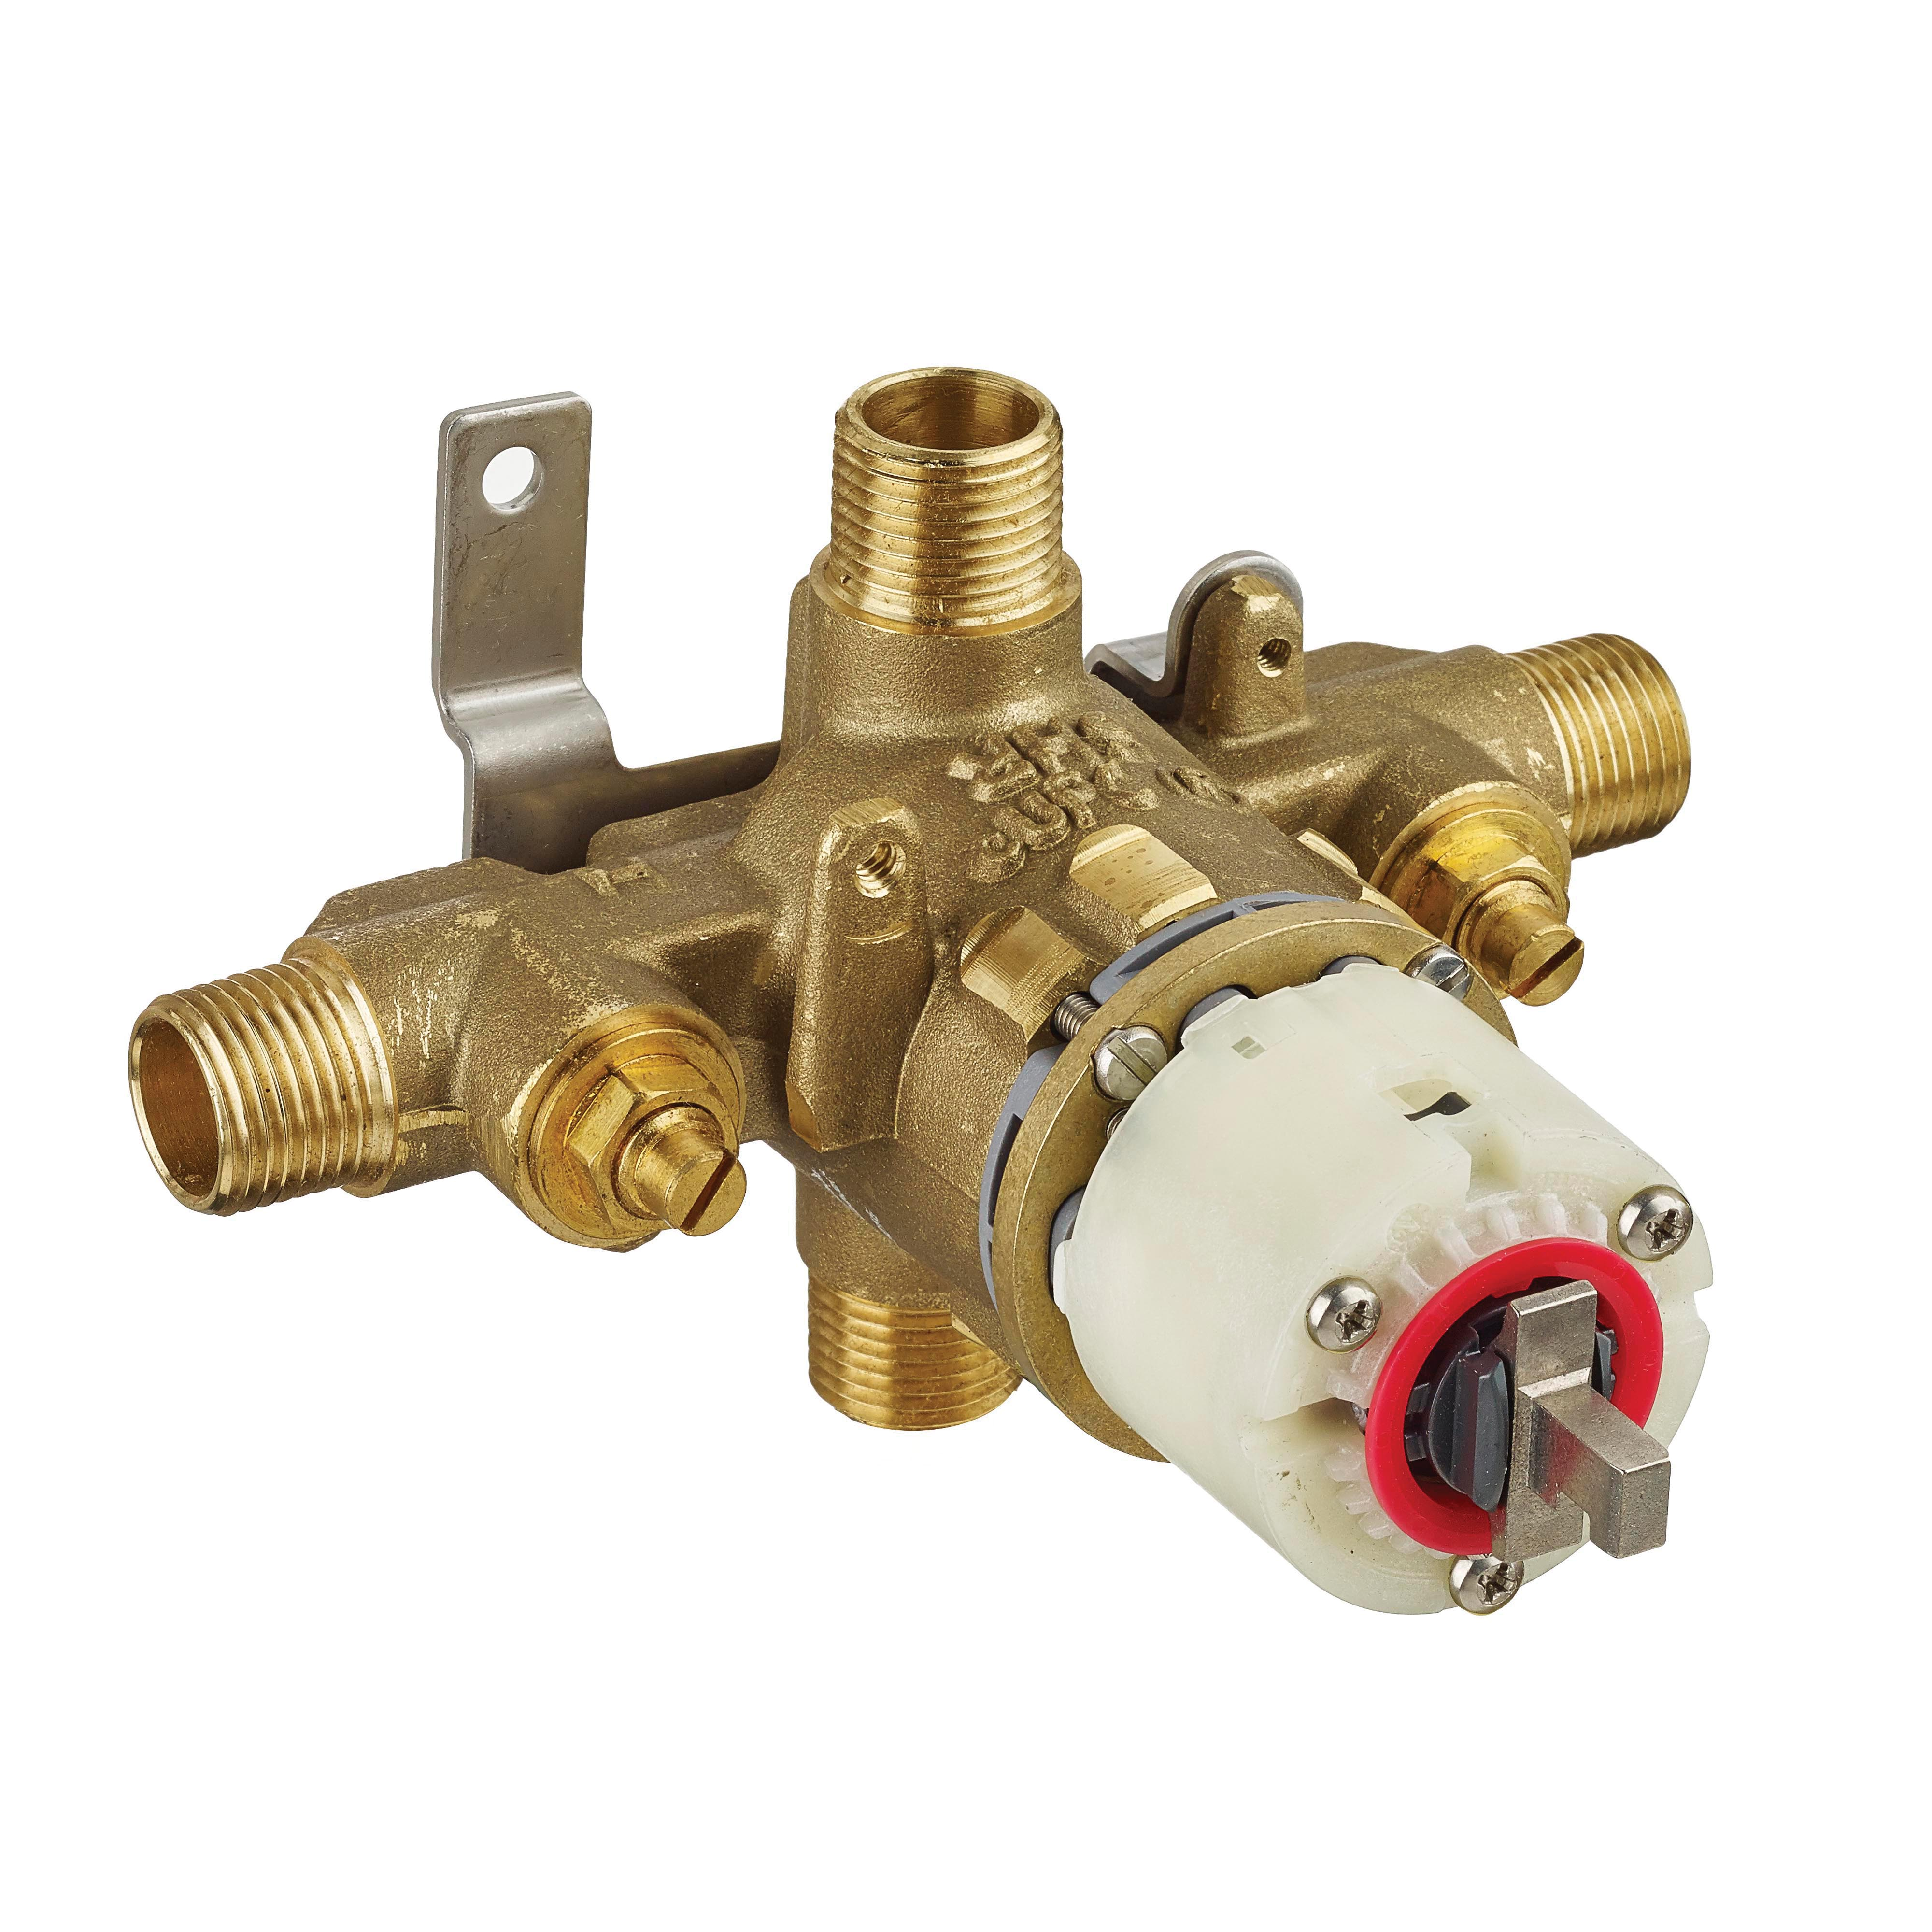 American Standard R121SS Pressure Balance Rough-In Valve Body, 1/2 in C/NPT Inlet x 1/2 in C/NPT Outlet, Cast Brass Body, Import